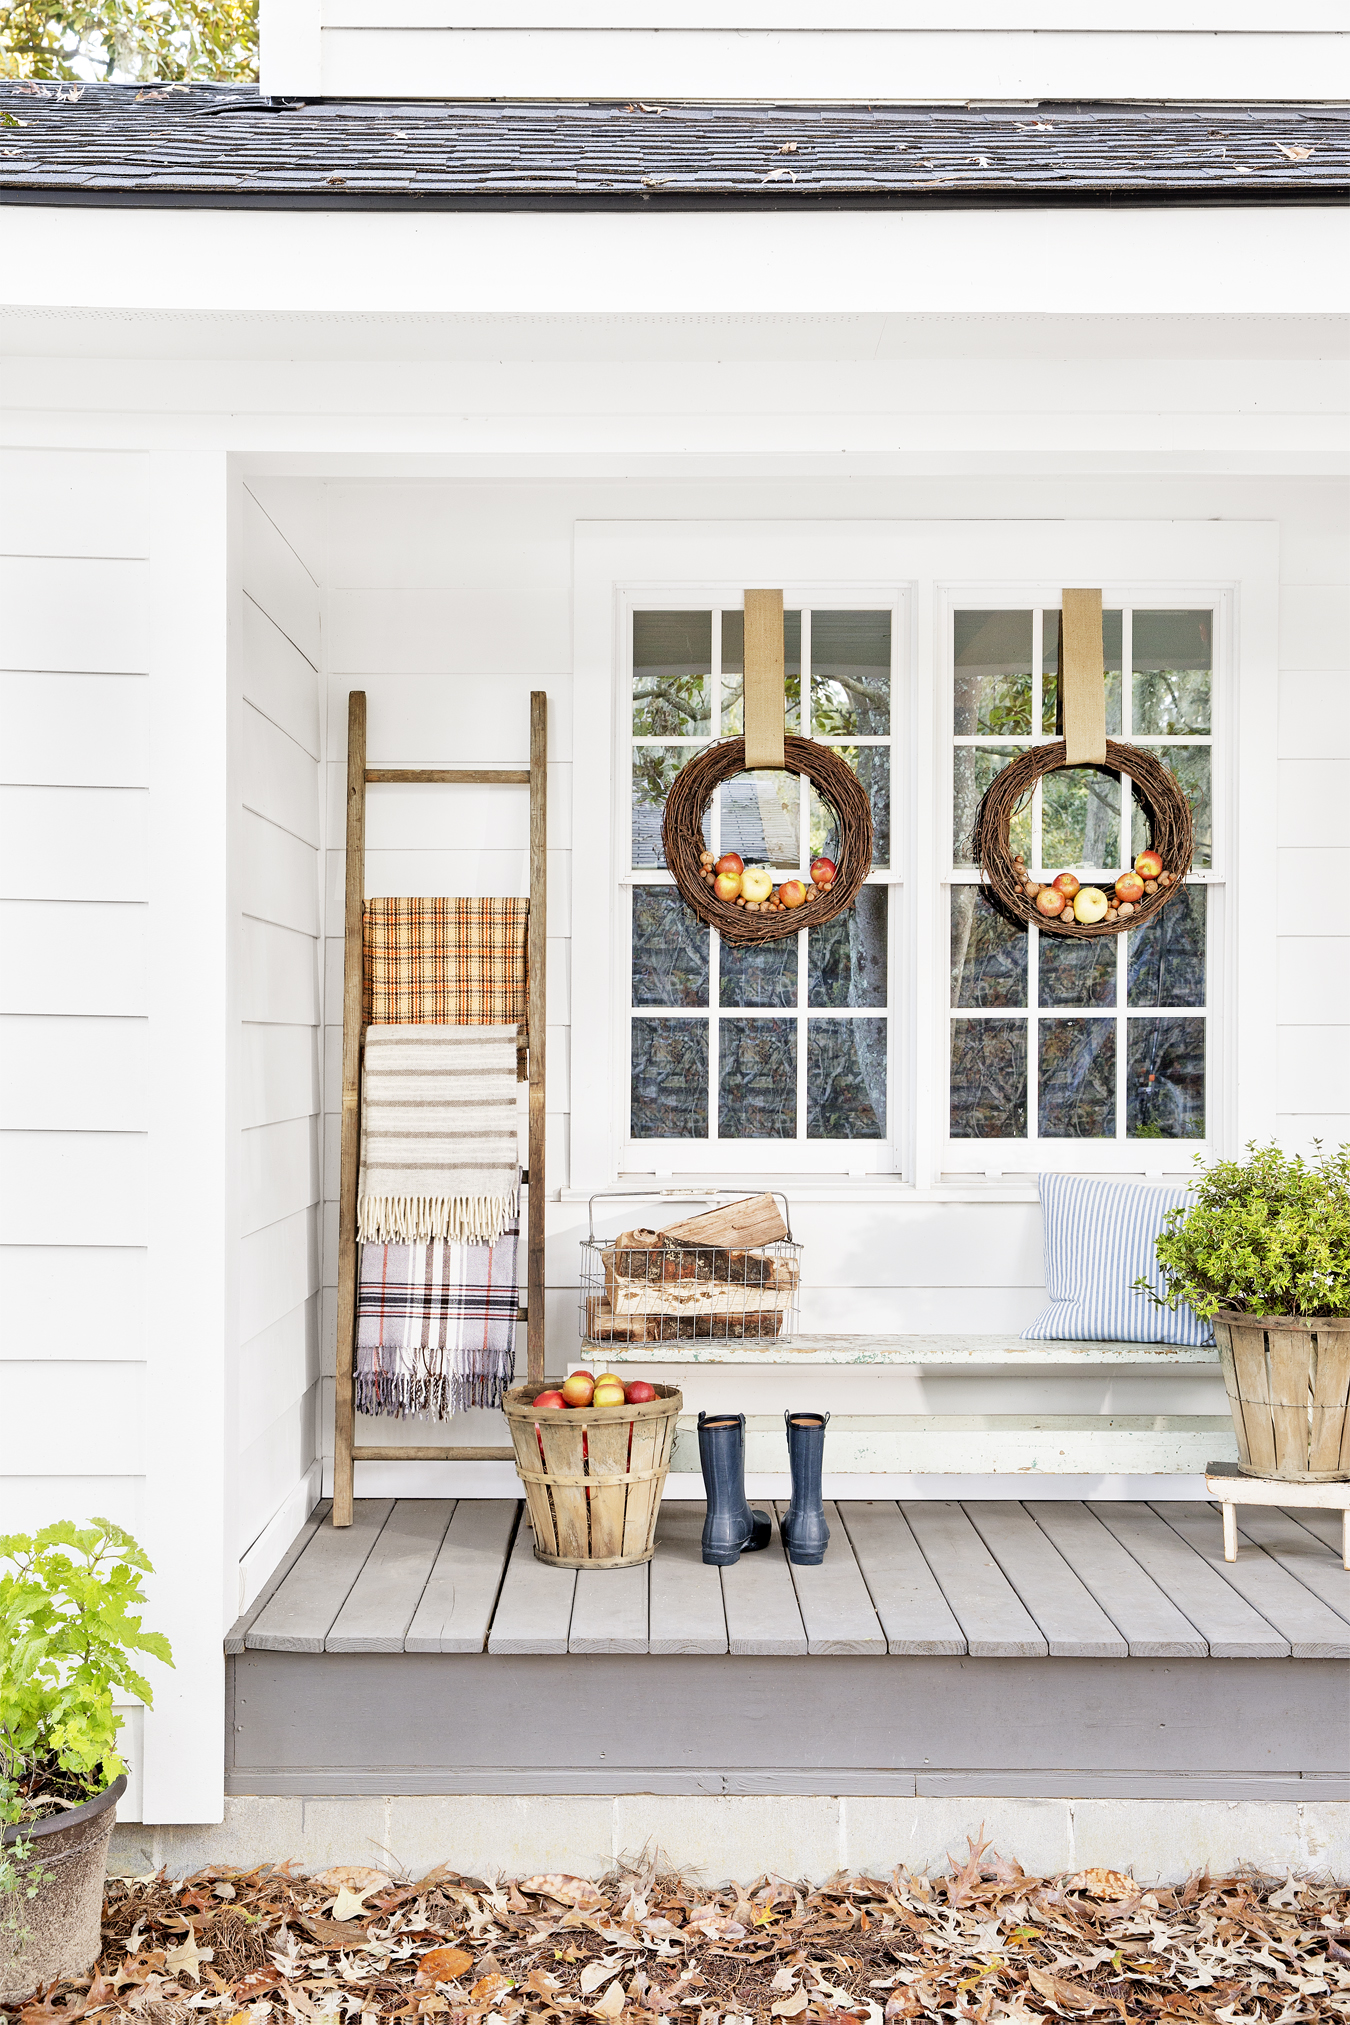 32 Fall Porch Decorating Ideas - Ways to Decorate Your ... on Country Patio Ideas id=41419